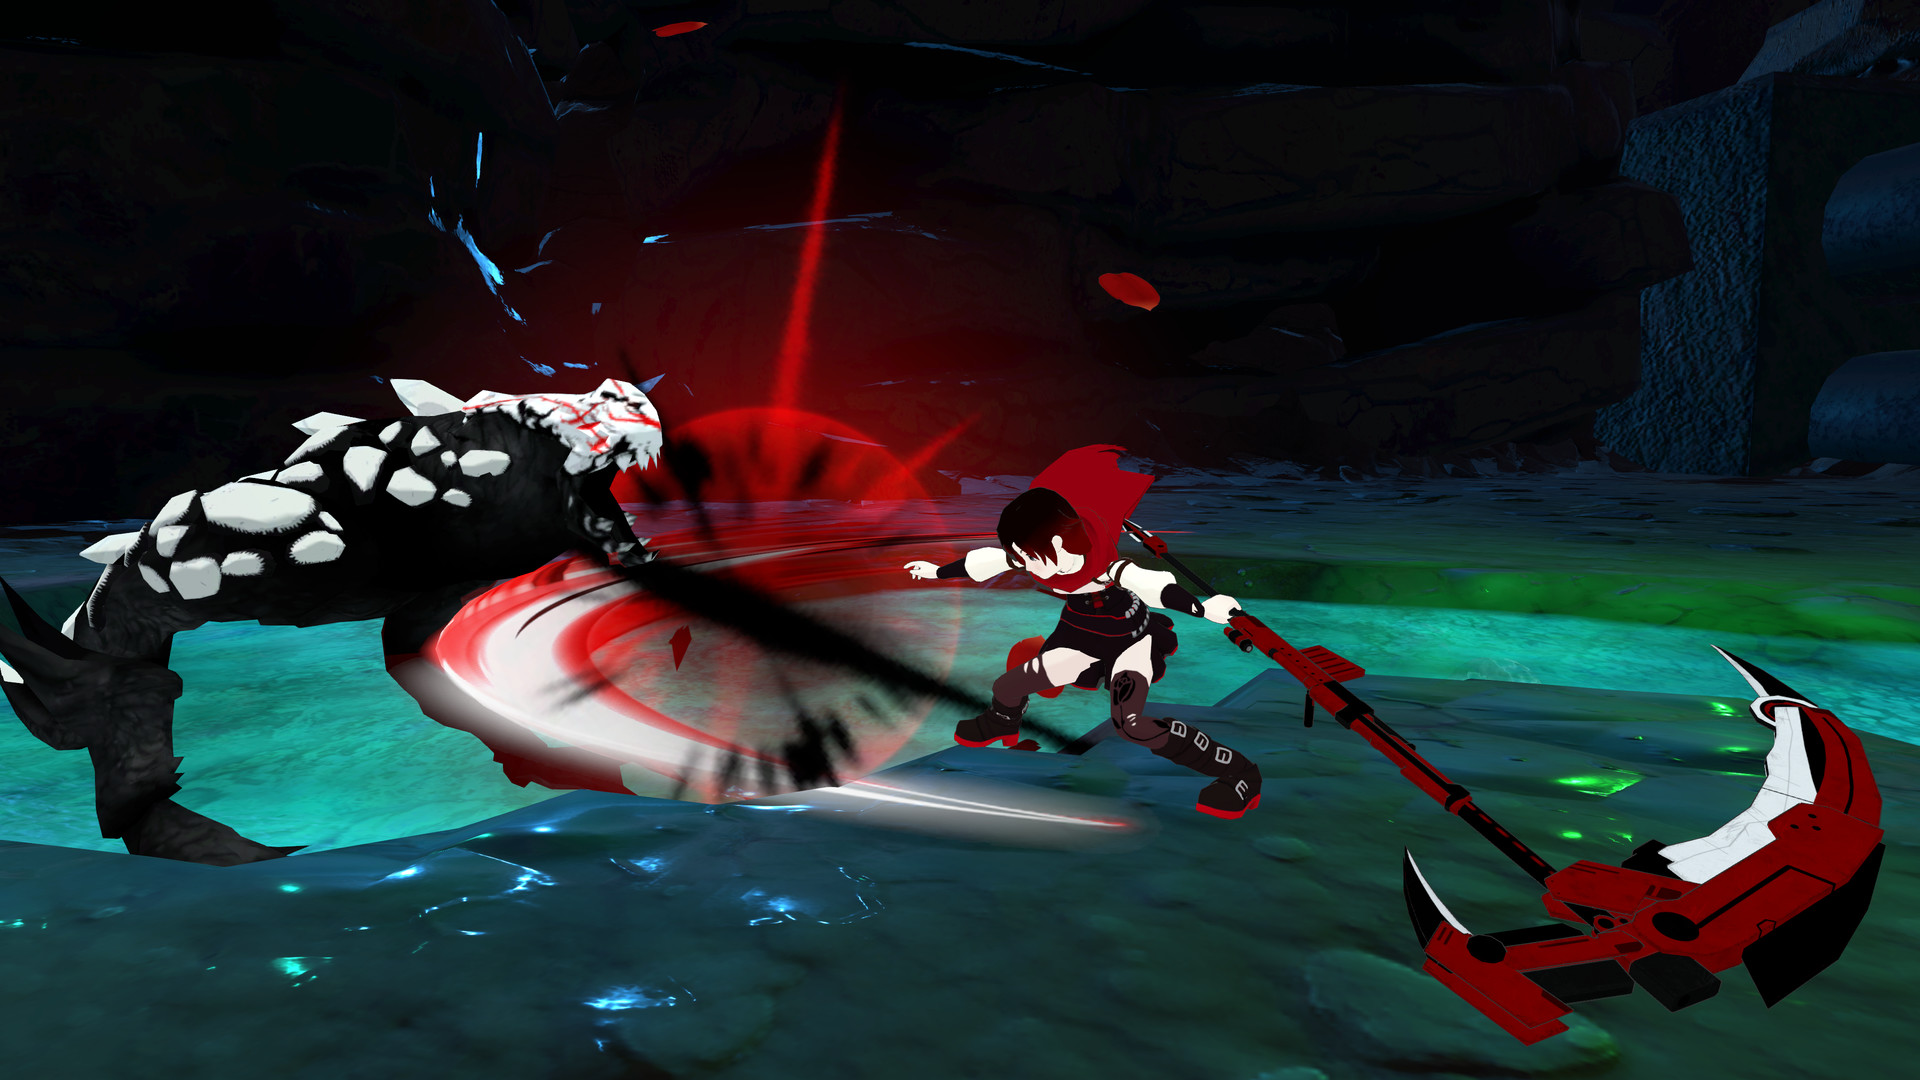 RWBY: Grimm Eclipse - Team RWBY Timeskip Costume Pack